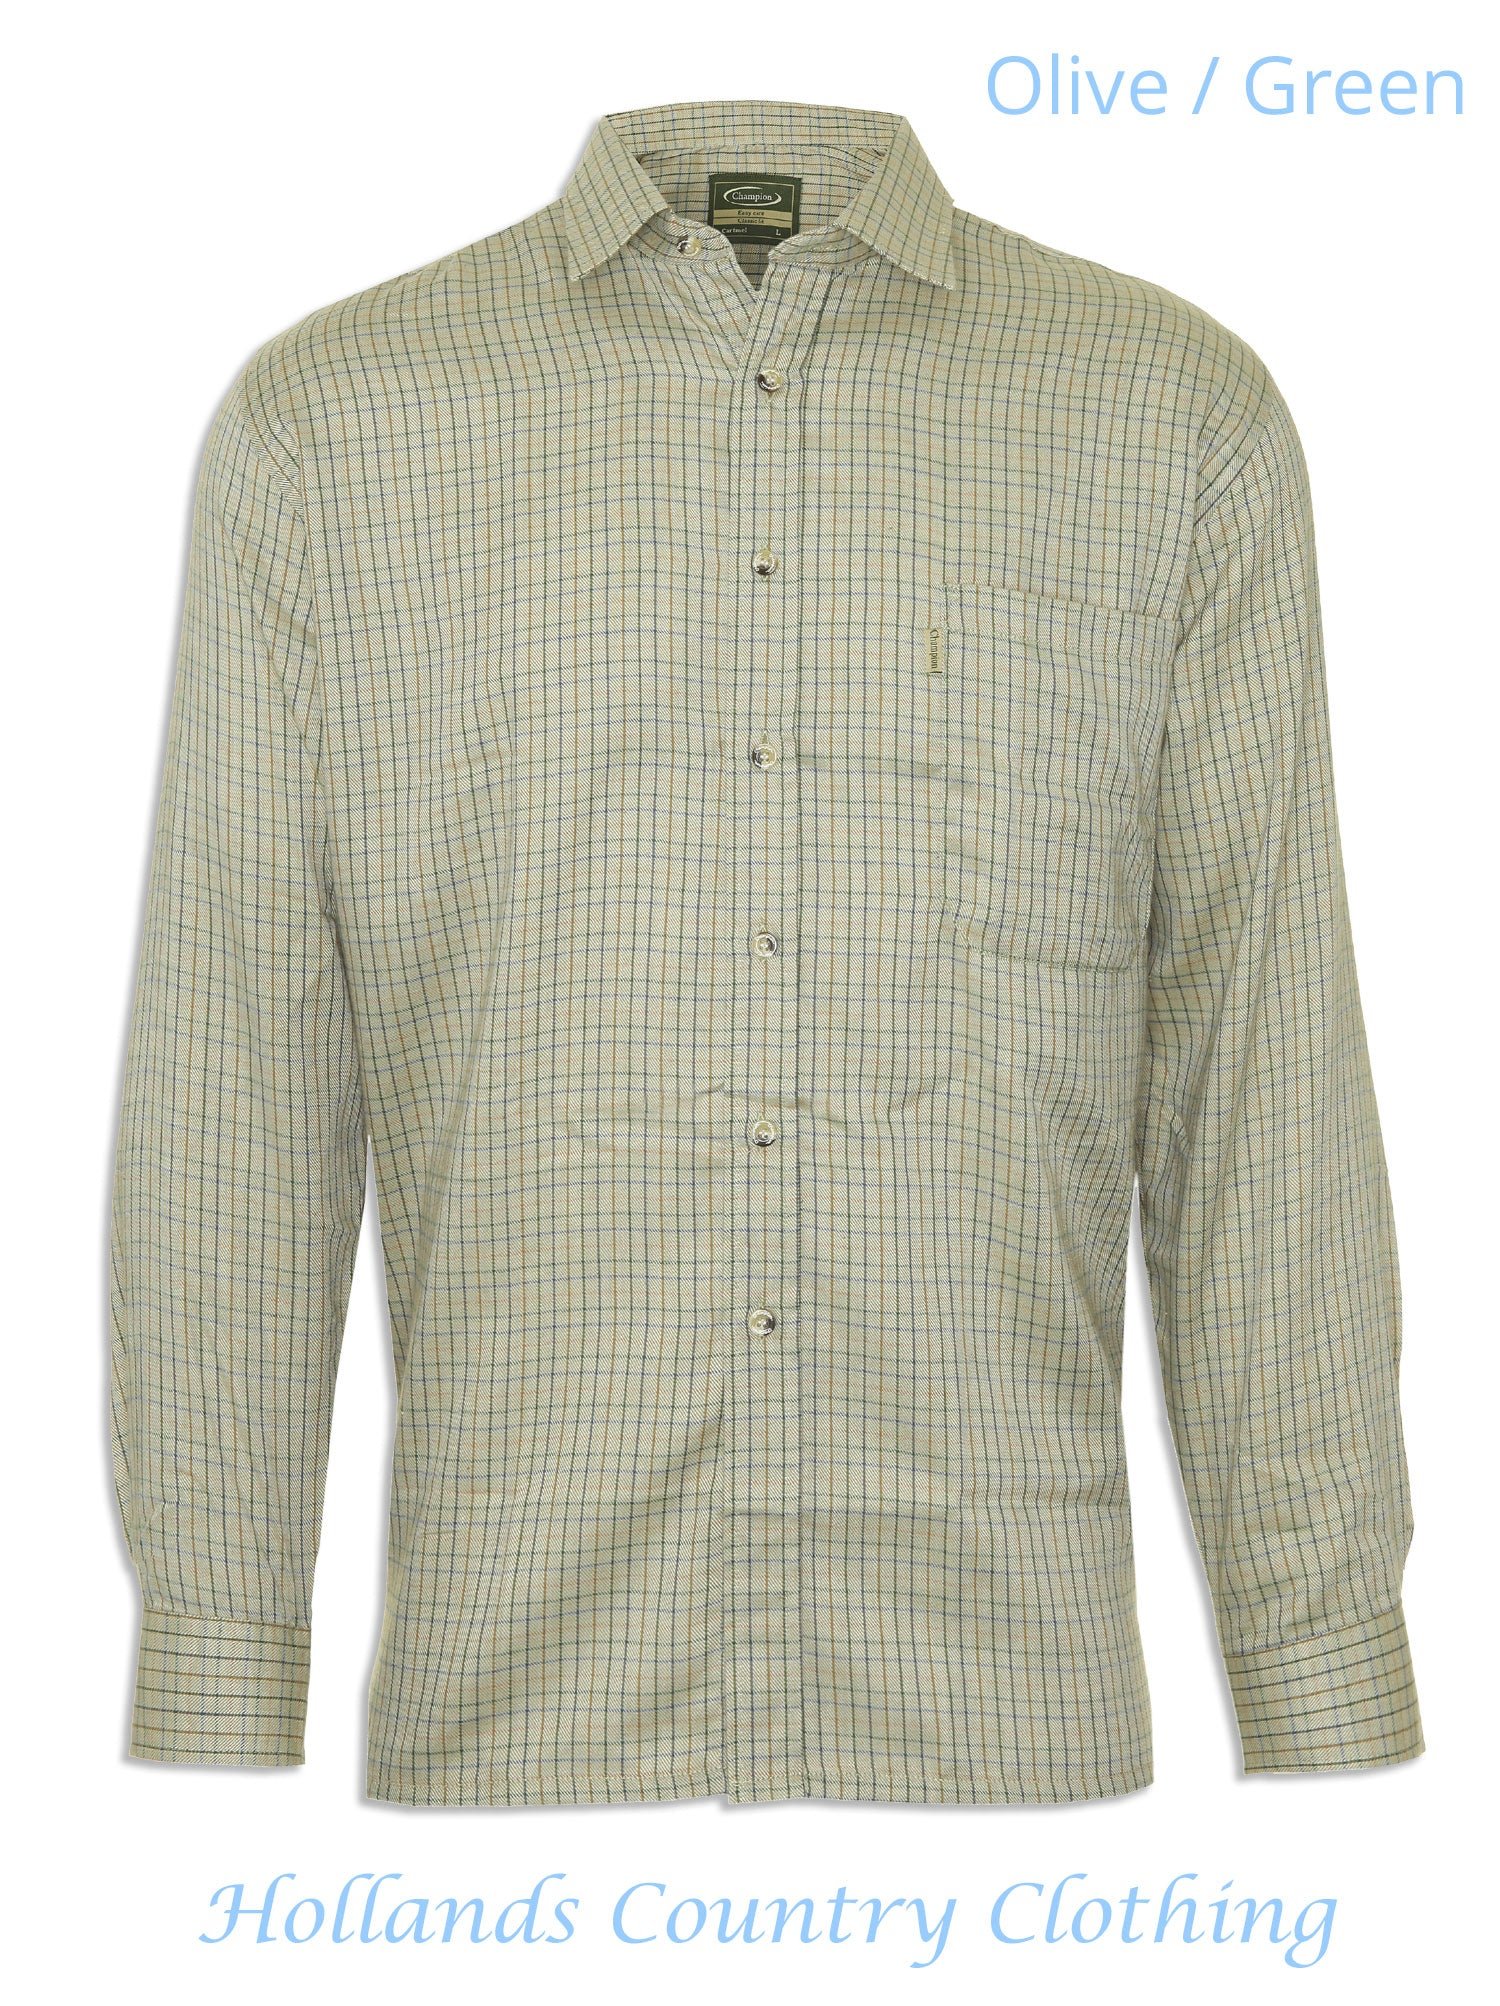 Olive green Champion Cartmel Cotton Rich Shirt (code 3099)